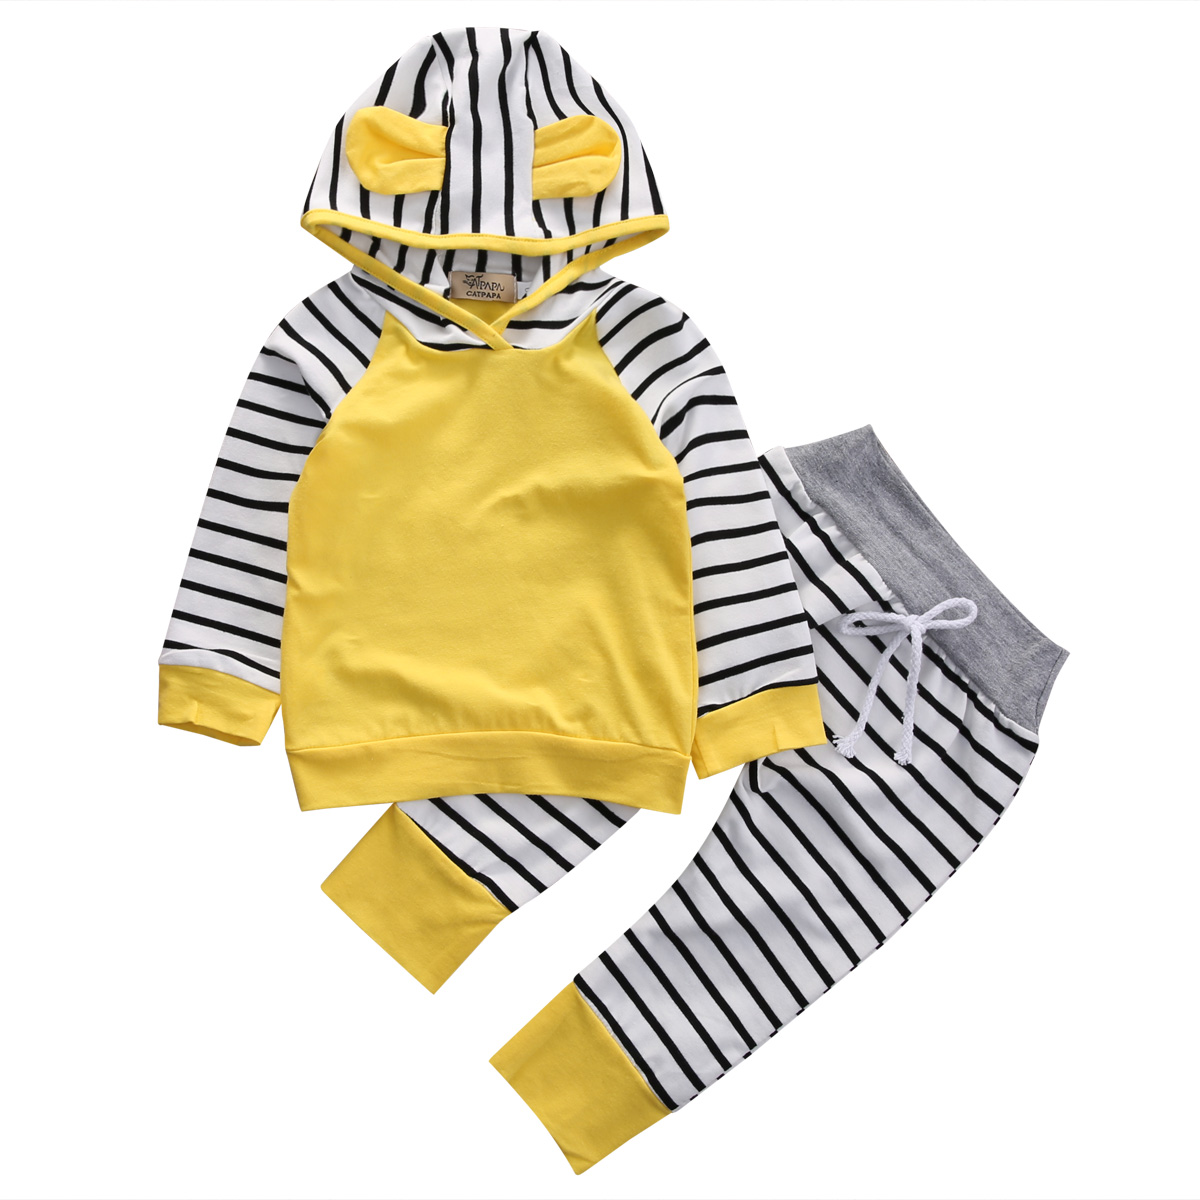 Pudcoco Adorable Autumn Spring Newborn Baby Girls boys Infant Warm Long Sleeve Hooded Top Sweatshirt Clothes Outfit Set0-3 years 2017 adorable hotest toddler baby girls boys warm hat winter hooded scarf ear flap knitted cap cute gift suit for 1 3 t